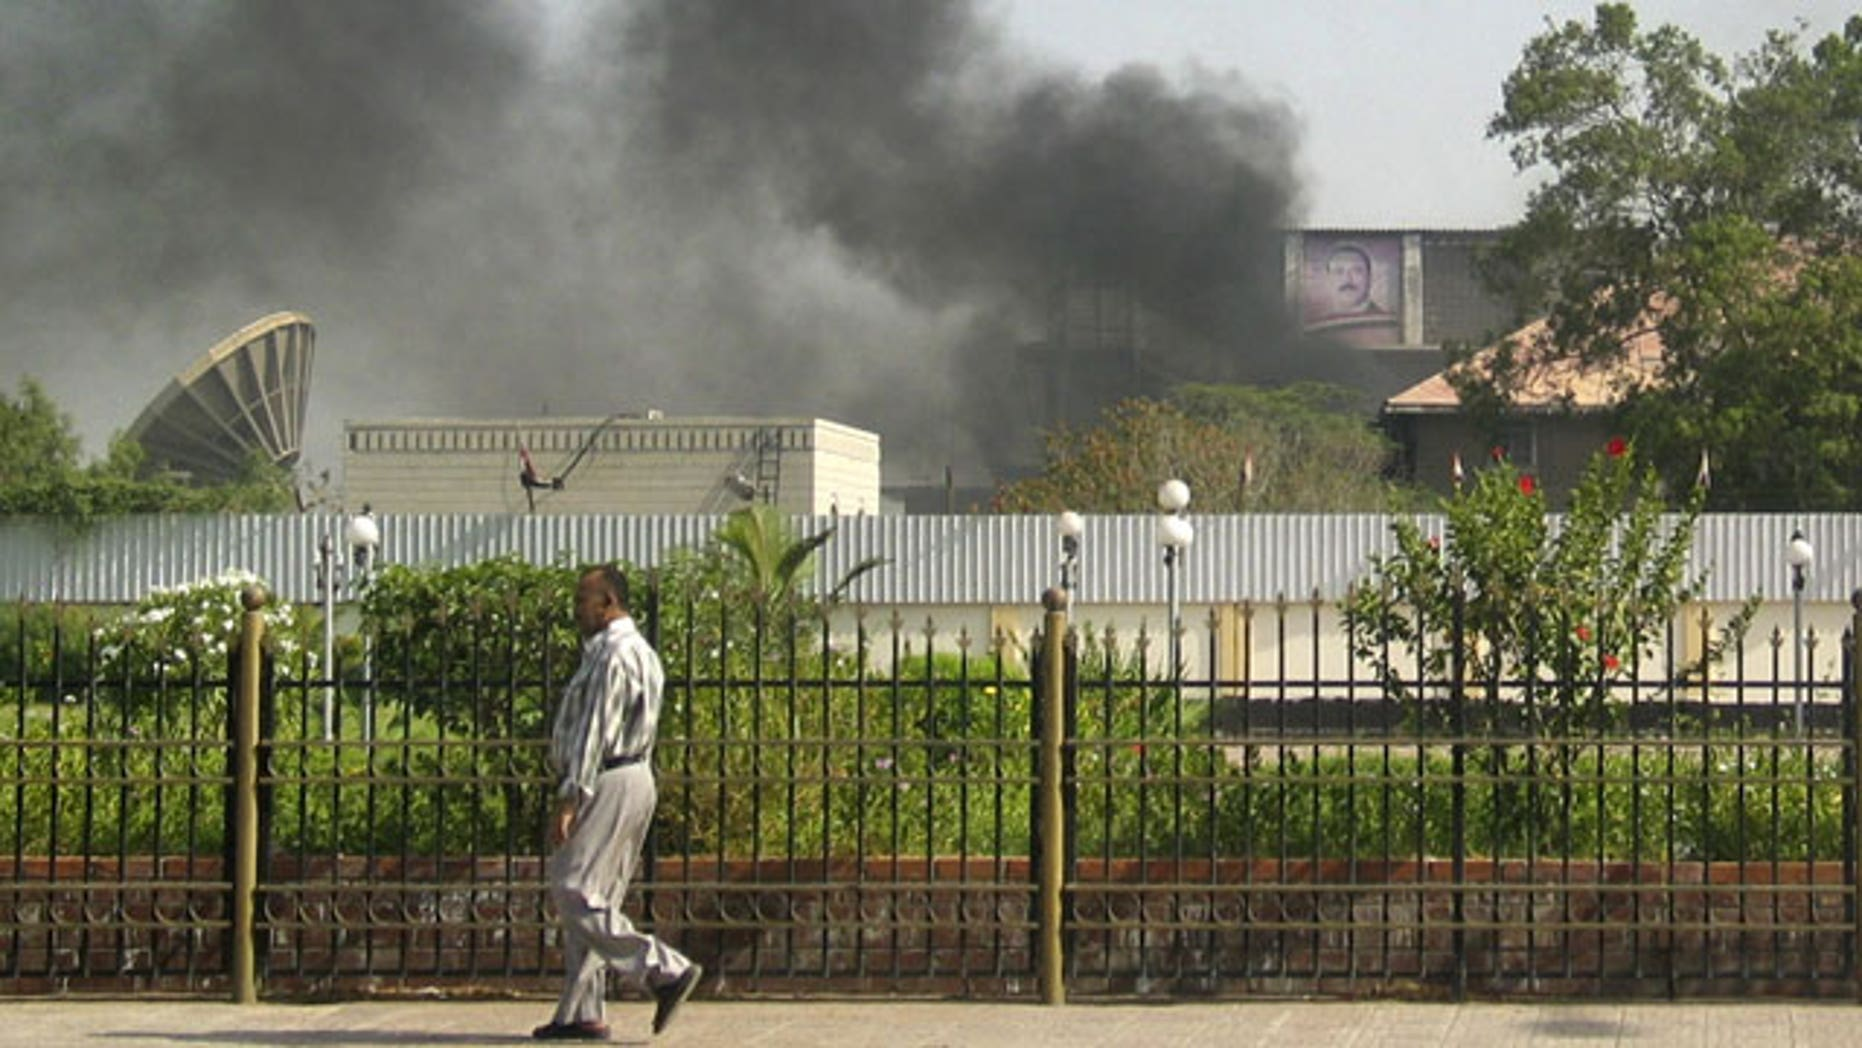 June 19: Black smoke is seen coming from the intelligence services building that came under attack in the southern port city of Aden, about 200 miles south of the capital, San'a, in Yemen.